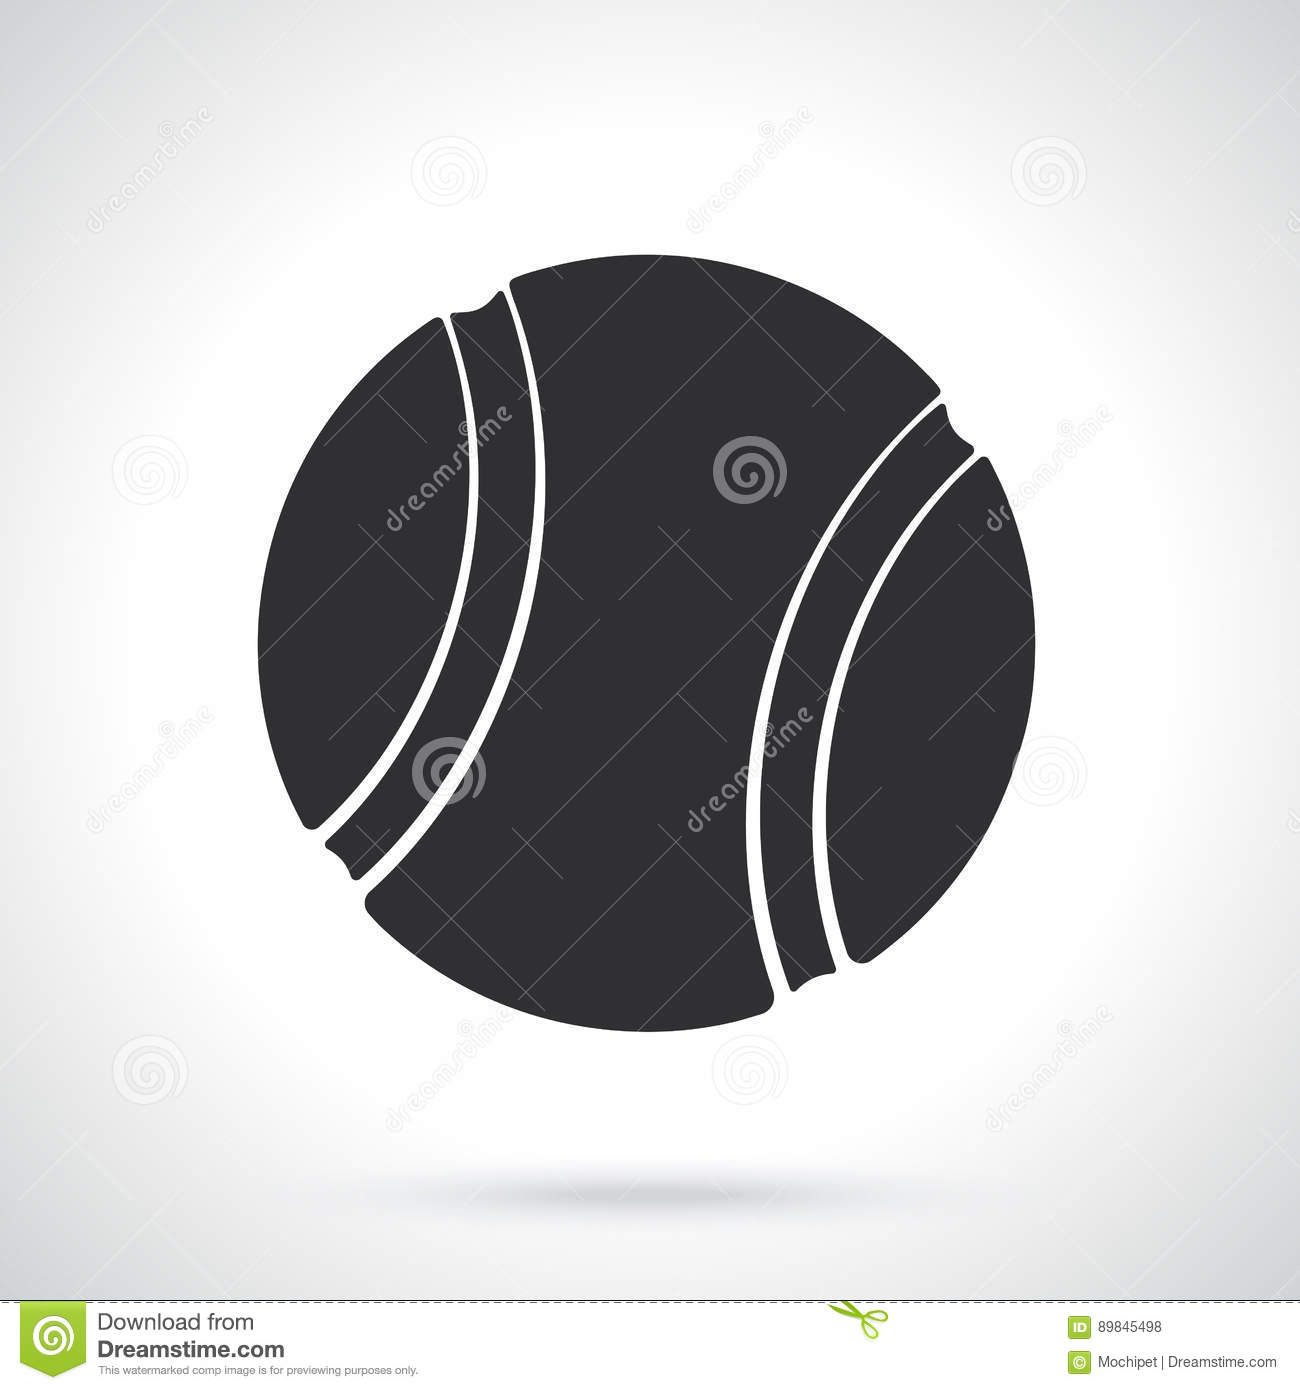 Silhouette Of Tennis Ball Stock Vector Illustration Of Abstract